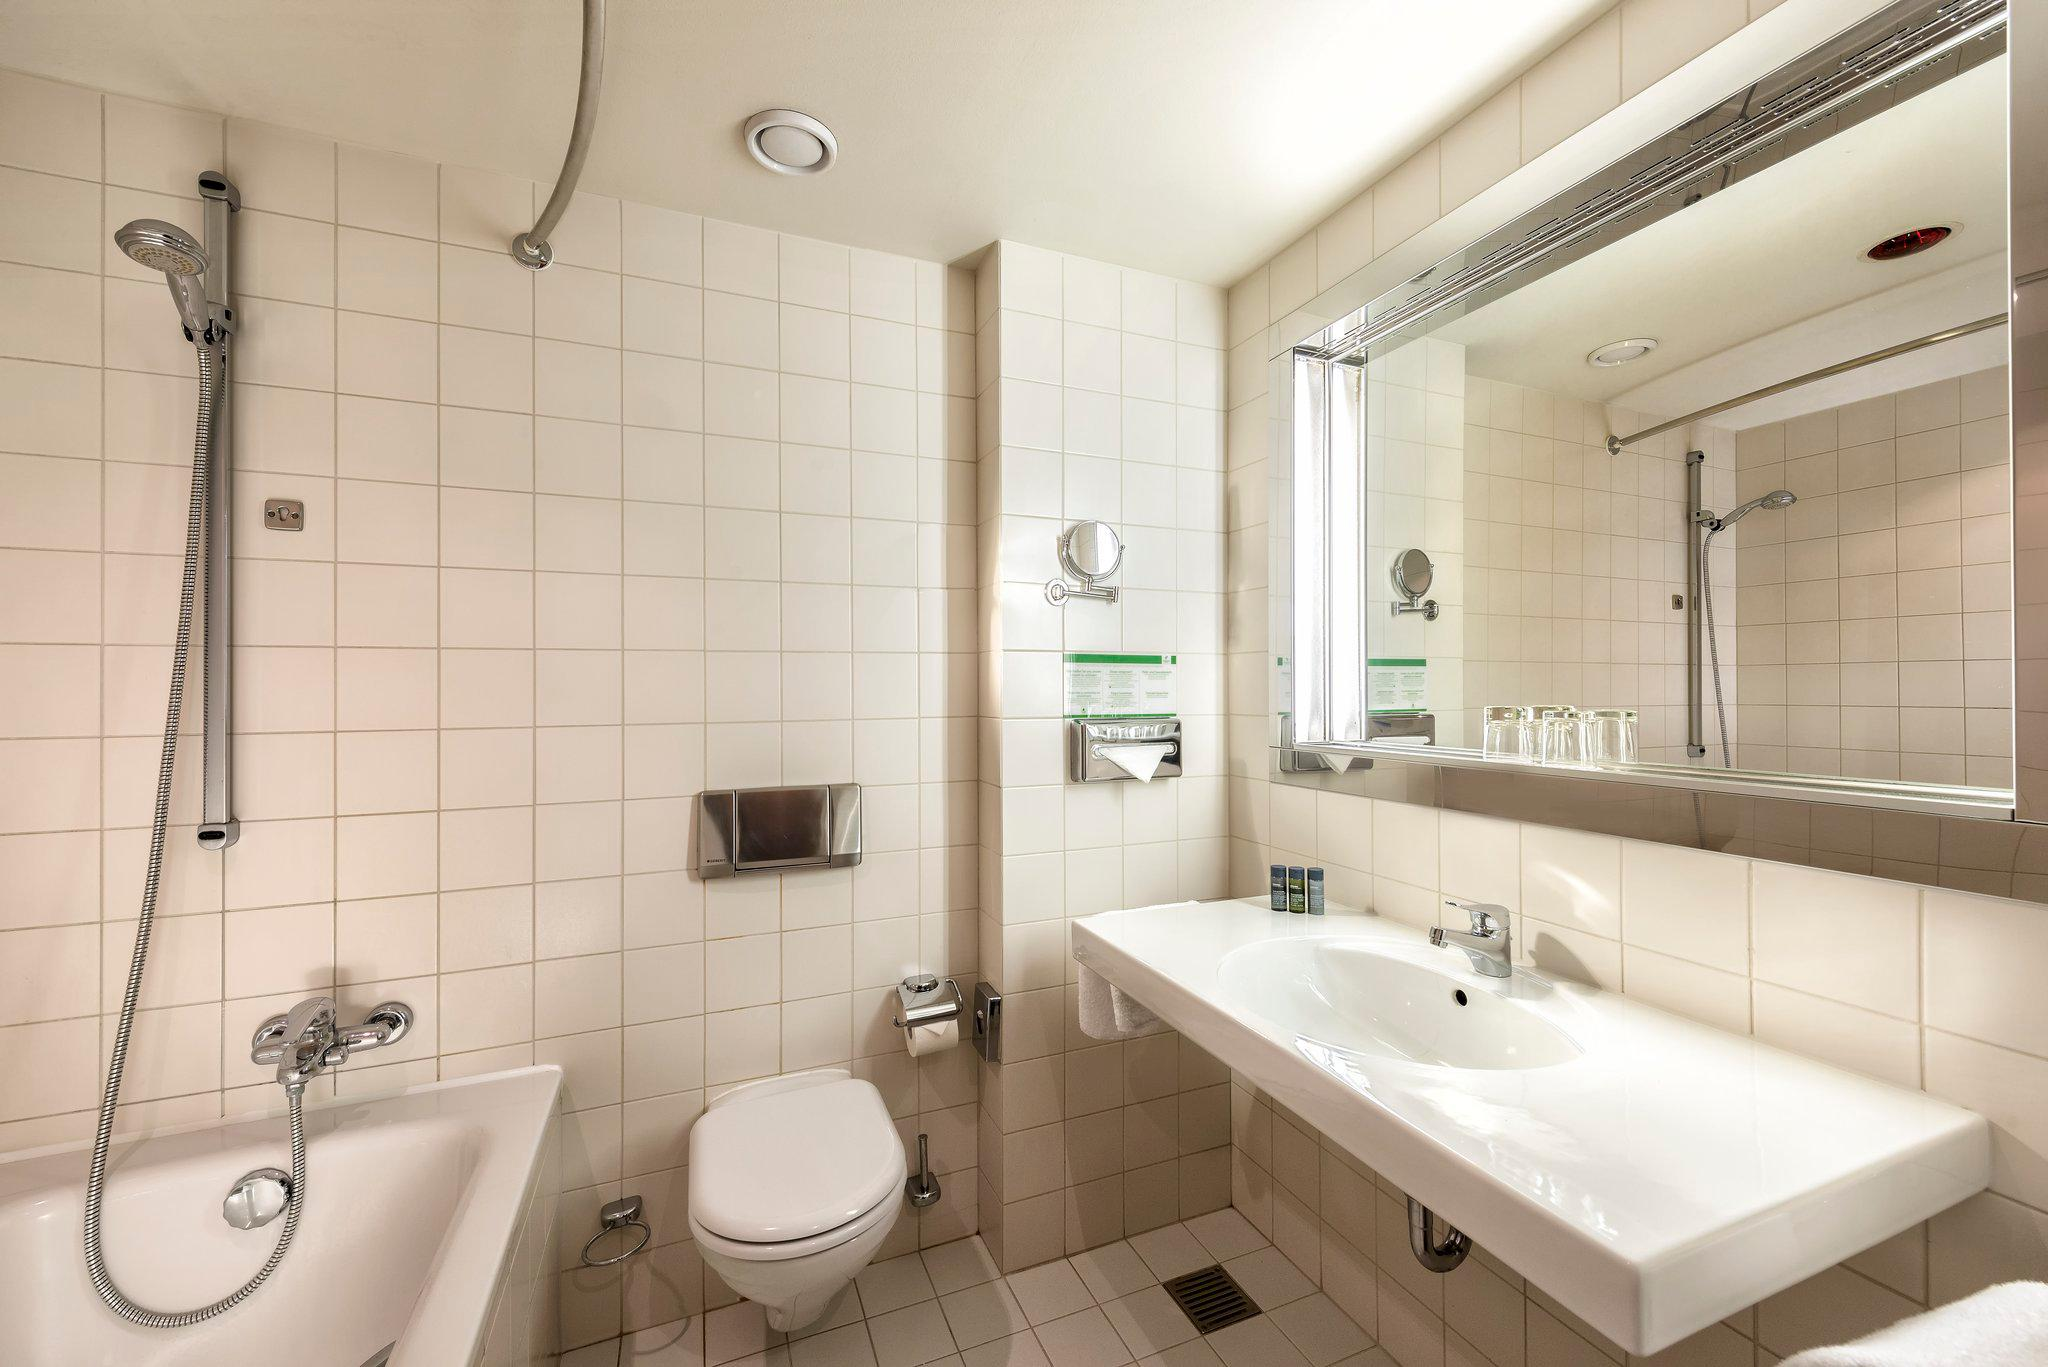 Bilder Holiday Inn Berlin - City West